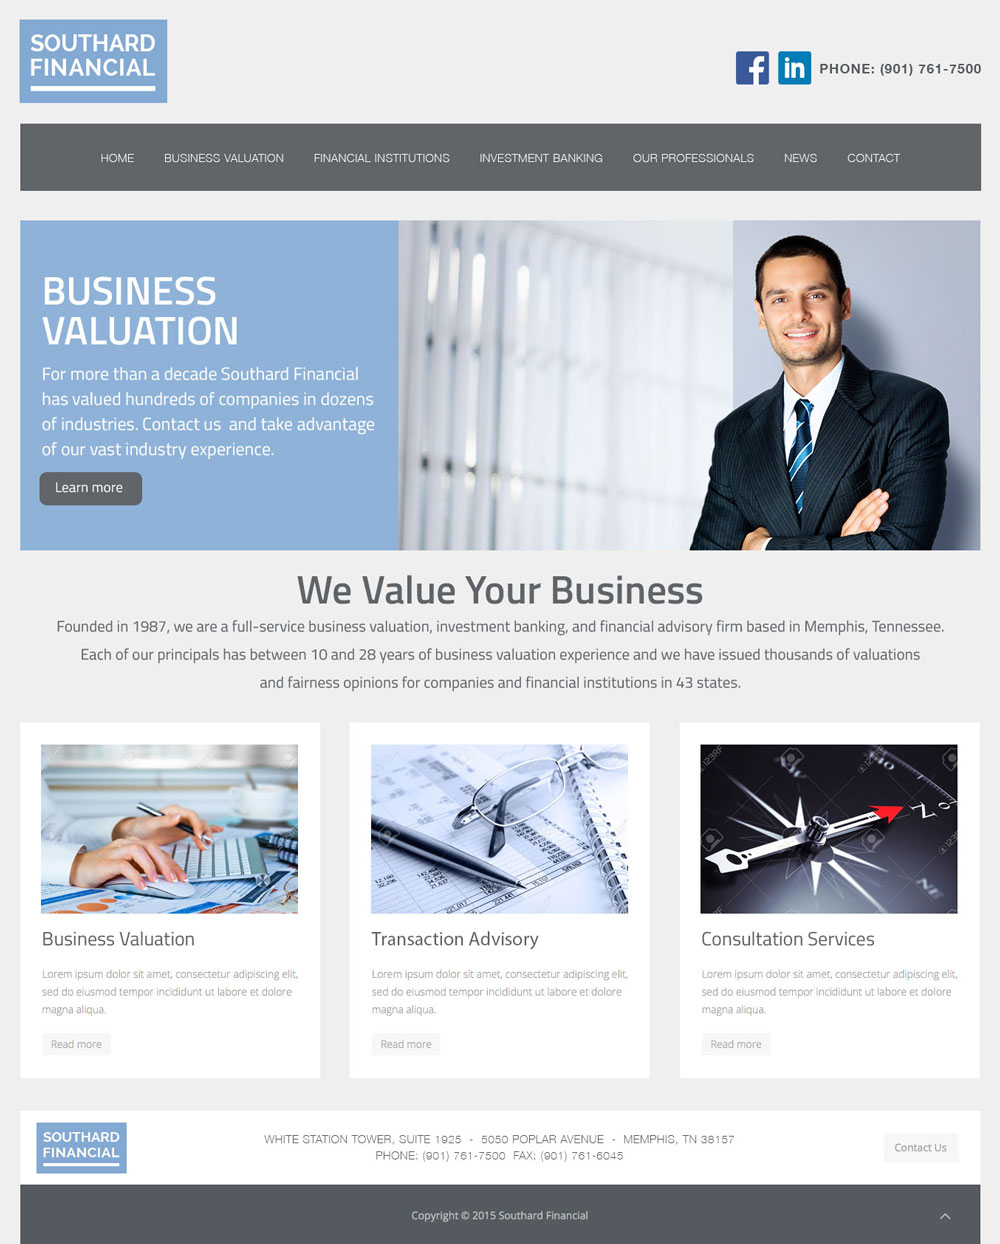 image of a website design concept for southard financial